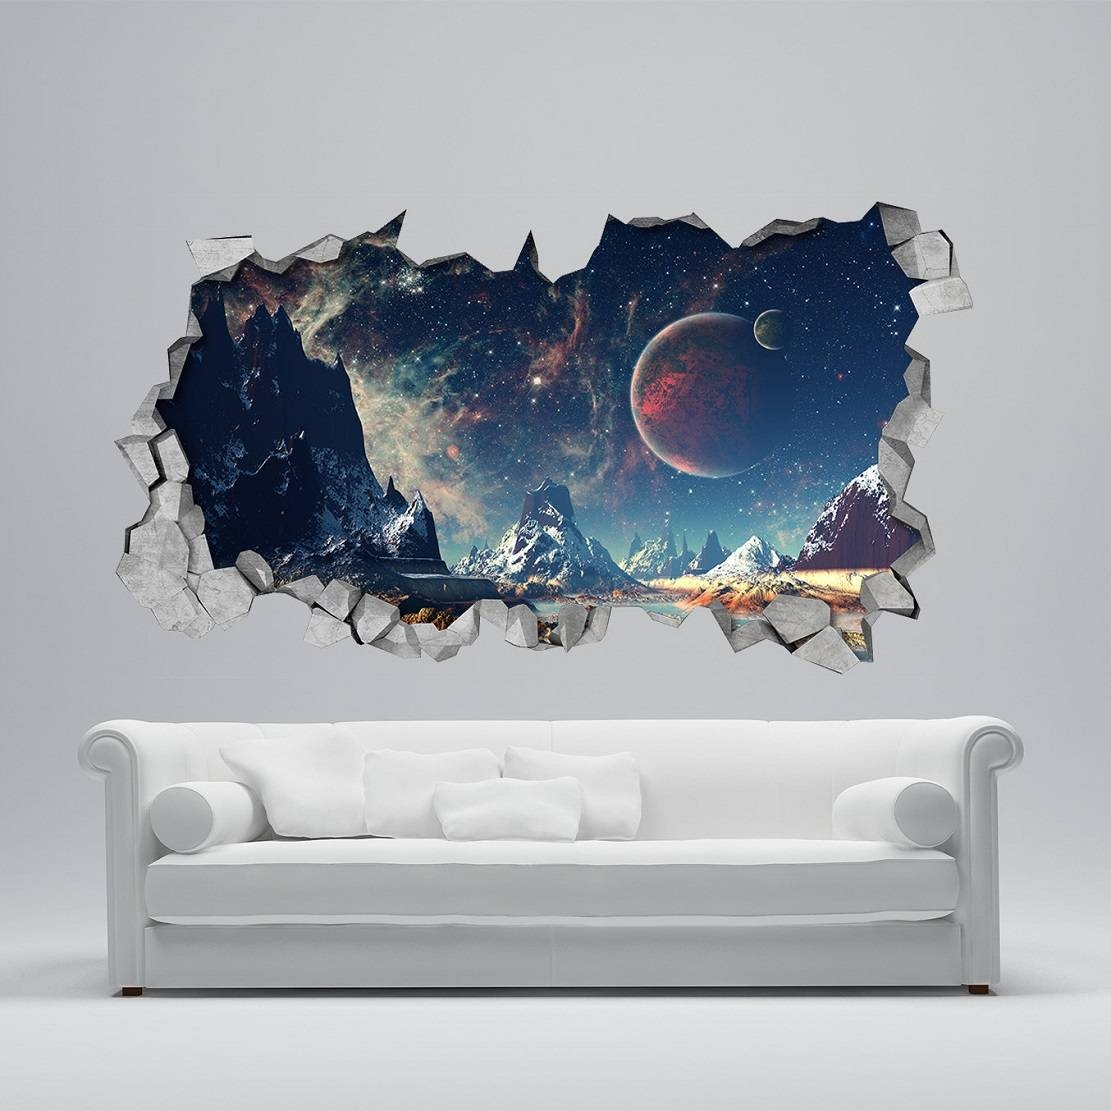 25 Unparalleled 3D Wall Art For Charming Homewall Decor Vill Pertaining To Most Current Astronaut 3D Wall Art (Gallery 5 of 20)